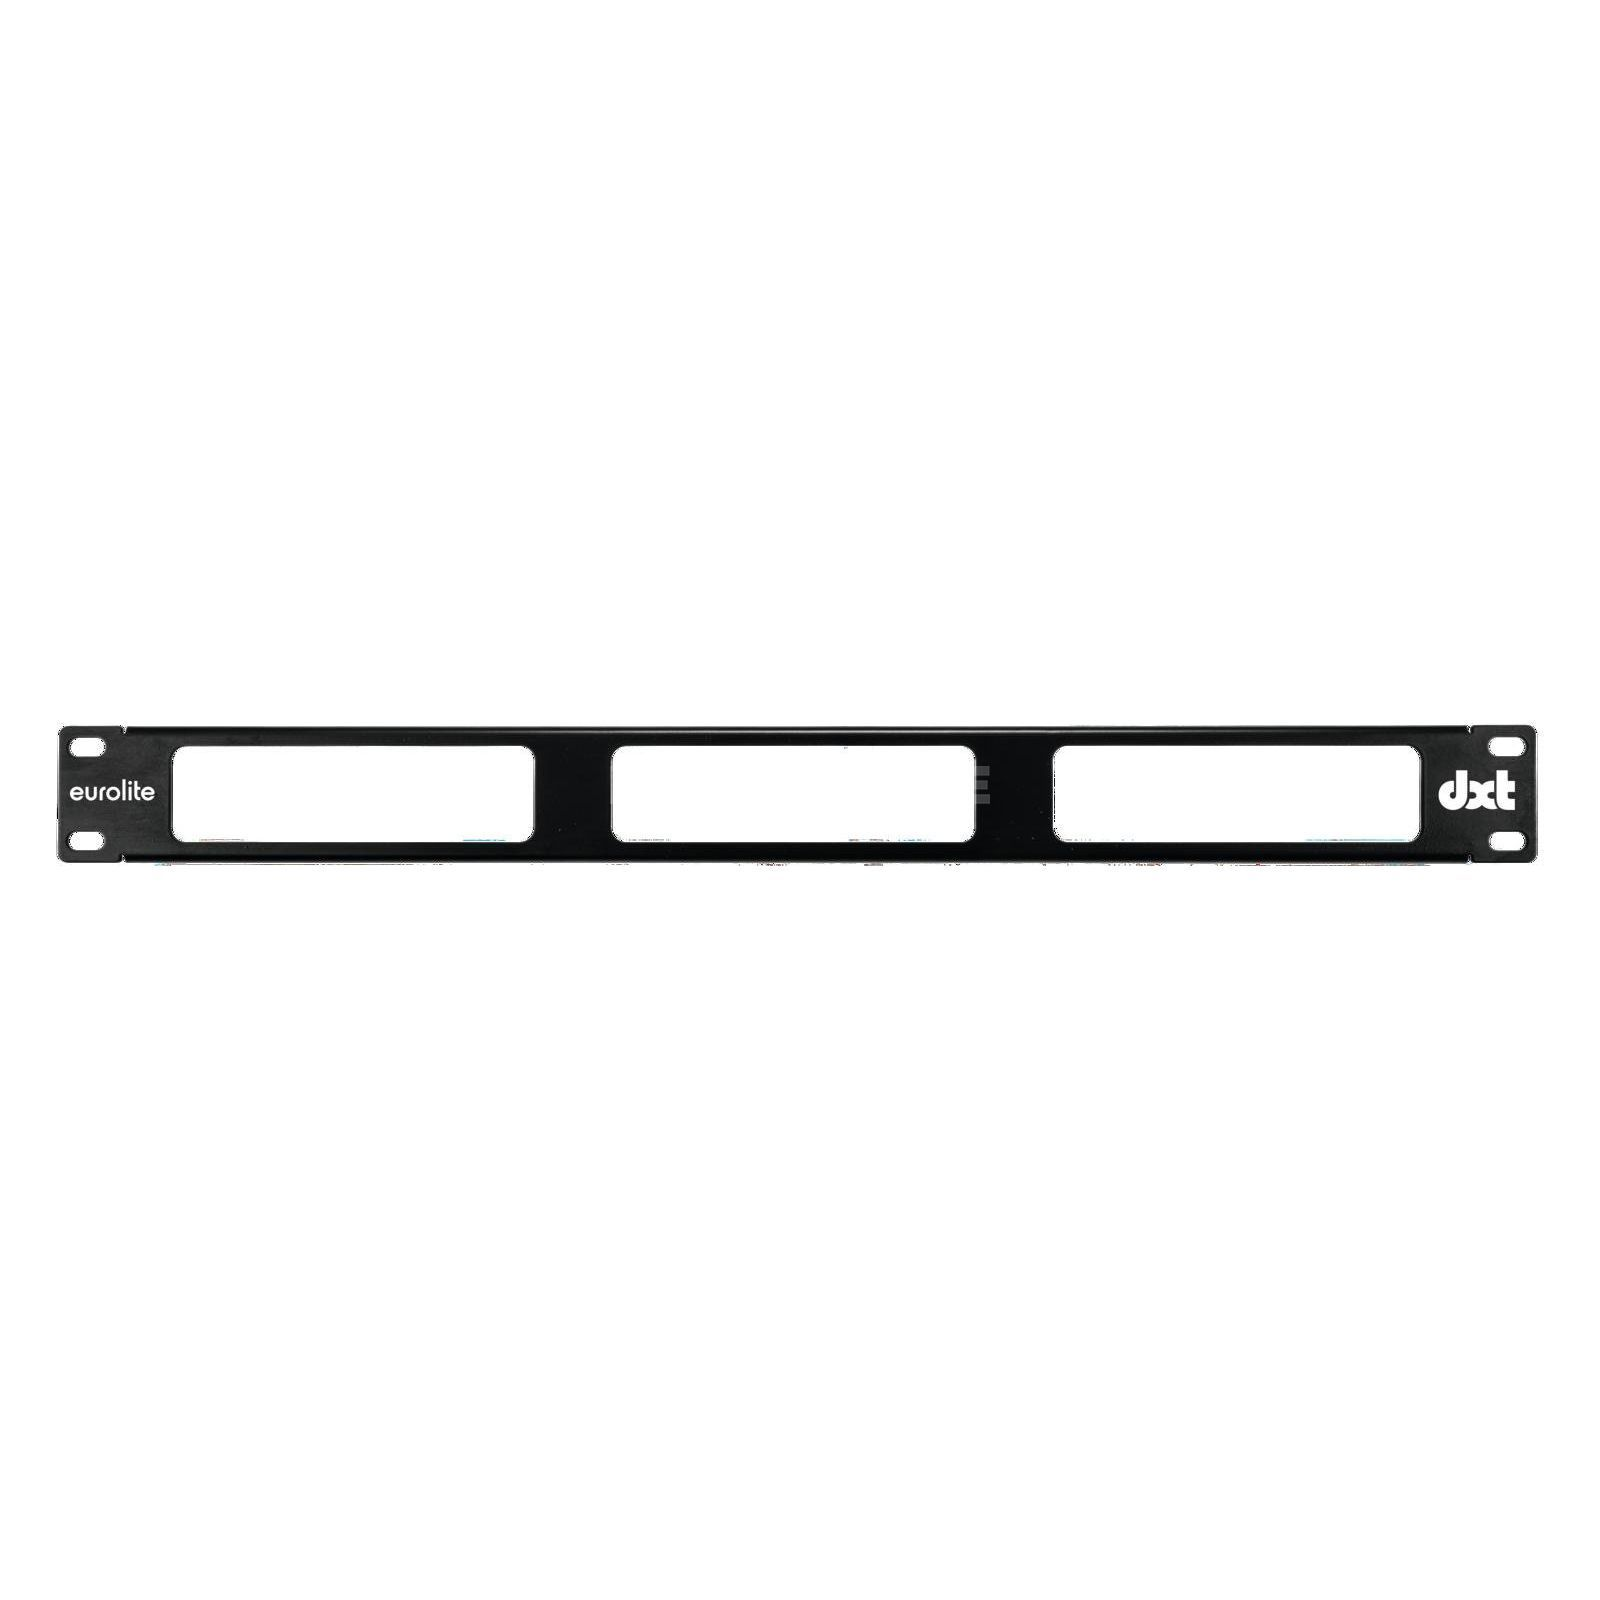 "Eurolite Blind plate for DXT mounting plate 19"" Product Image"